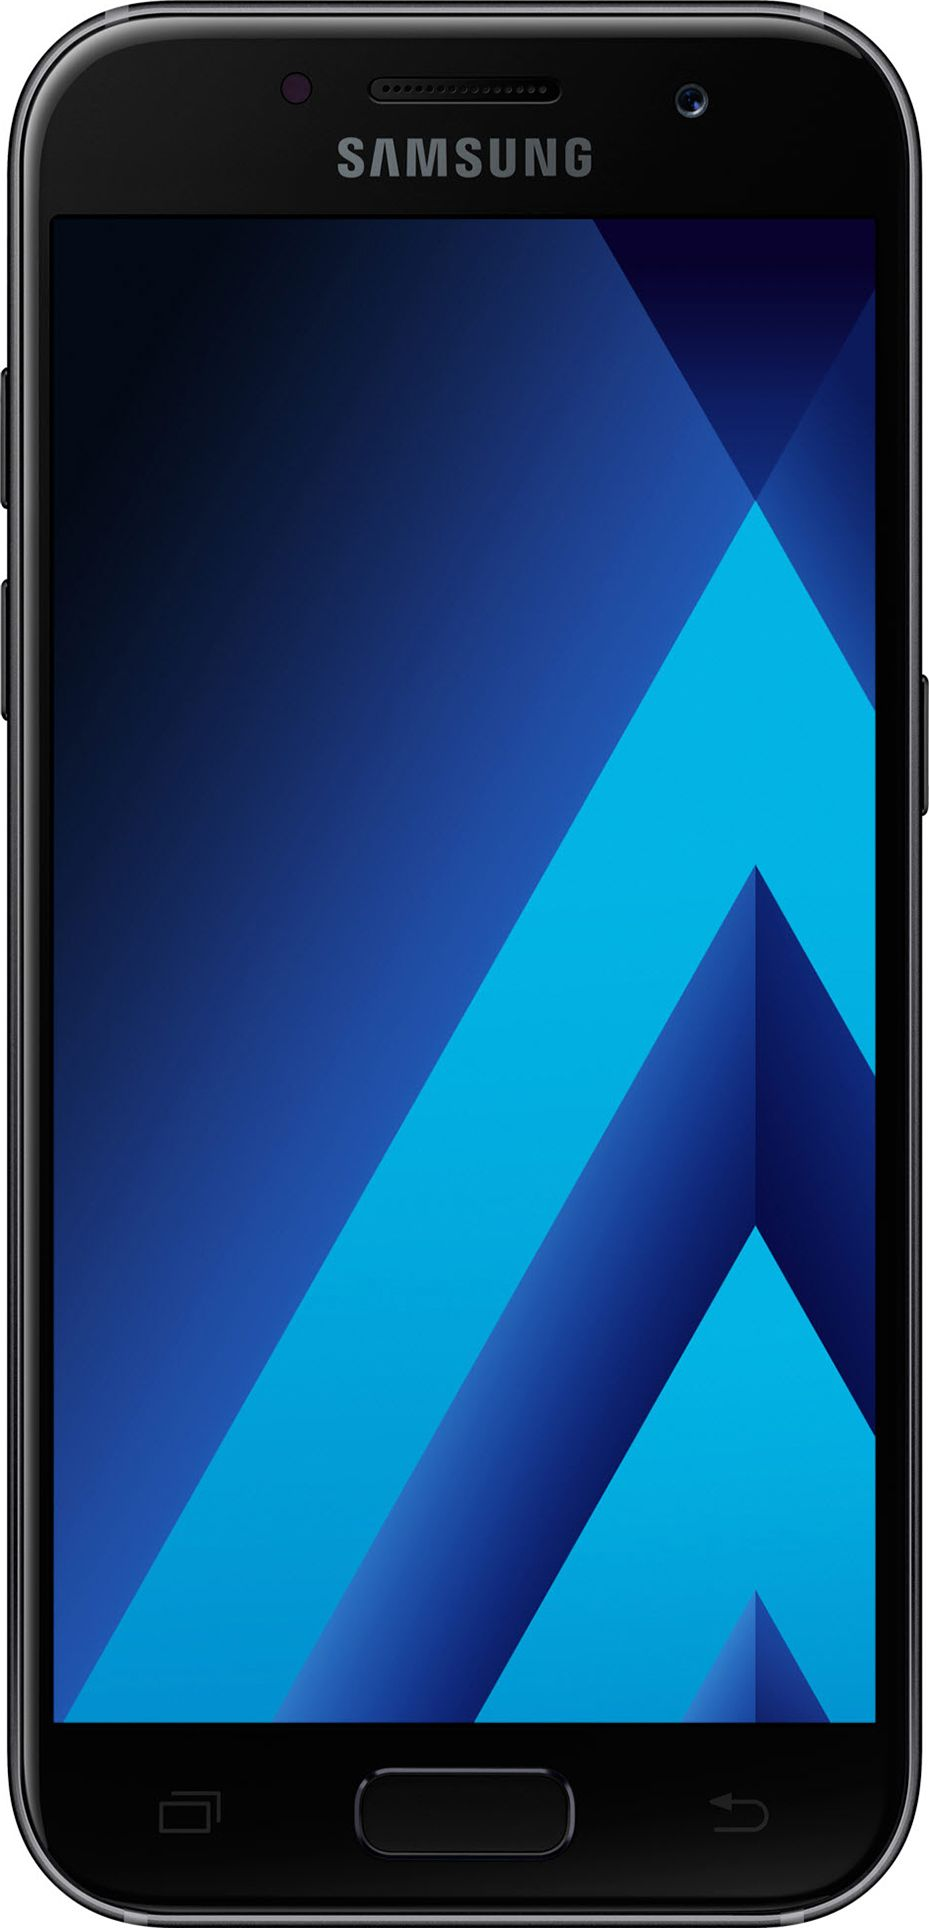 Samsung Galaxy A7 2017 might not be announced for European region